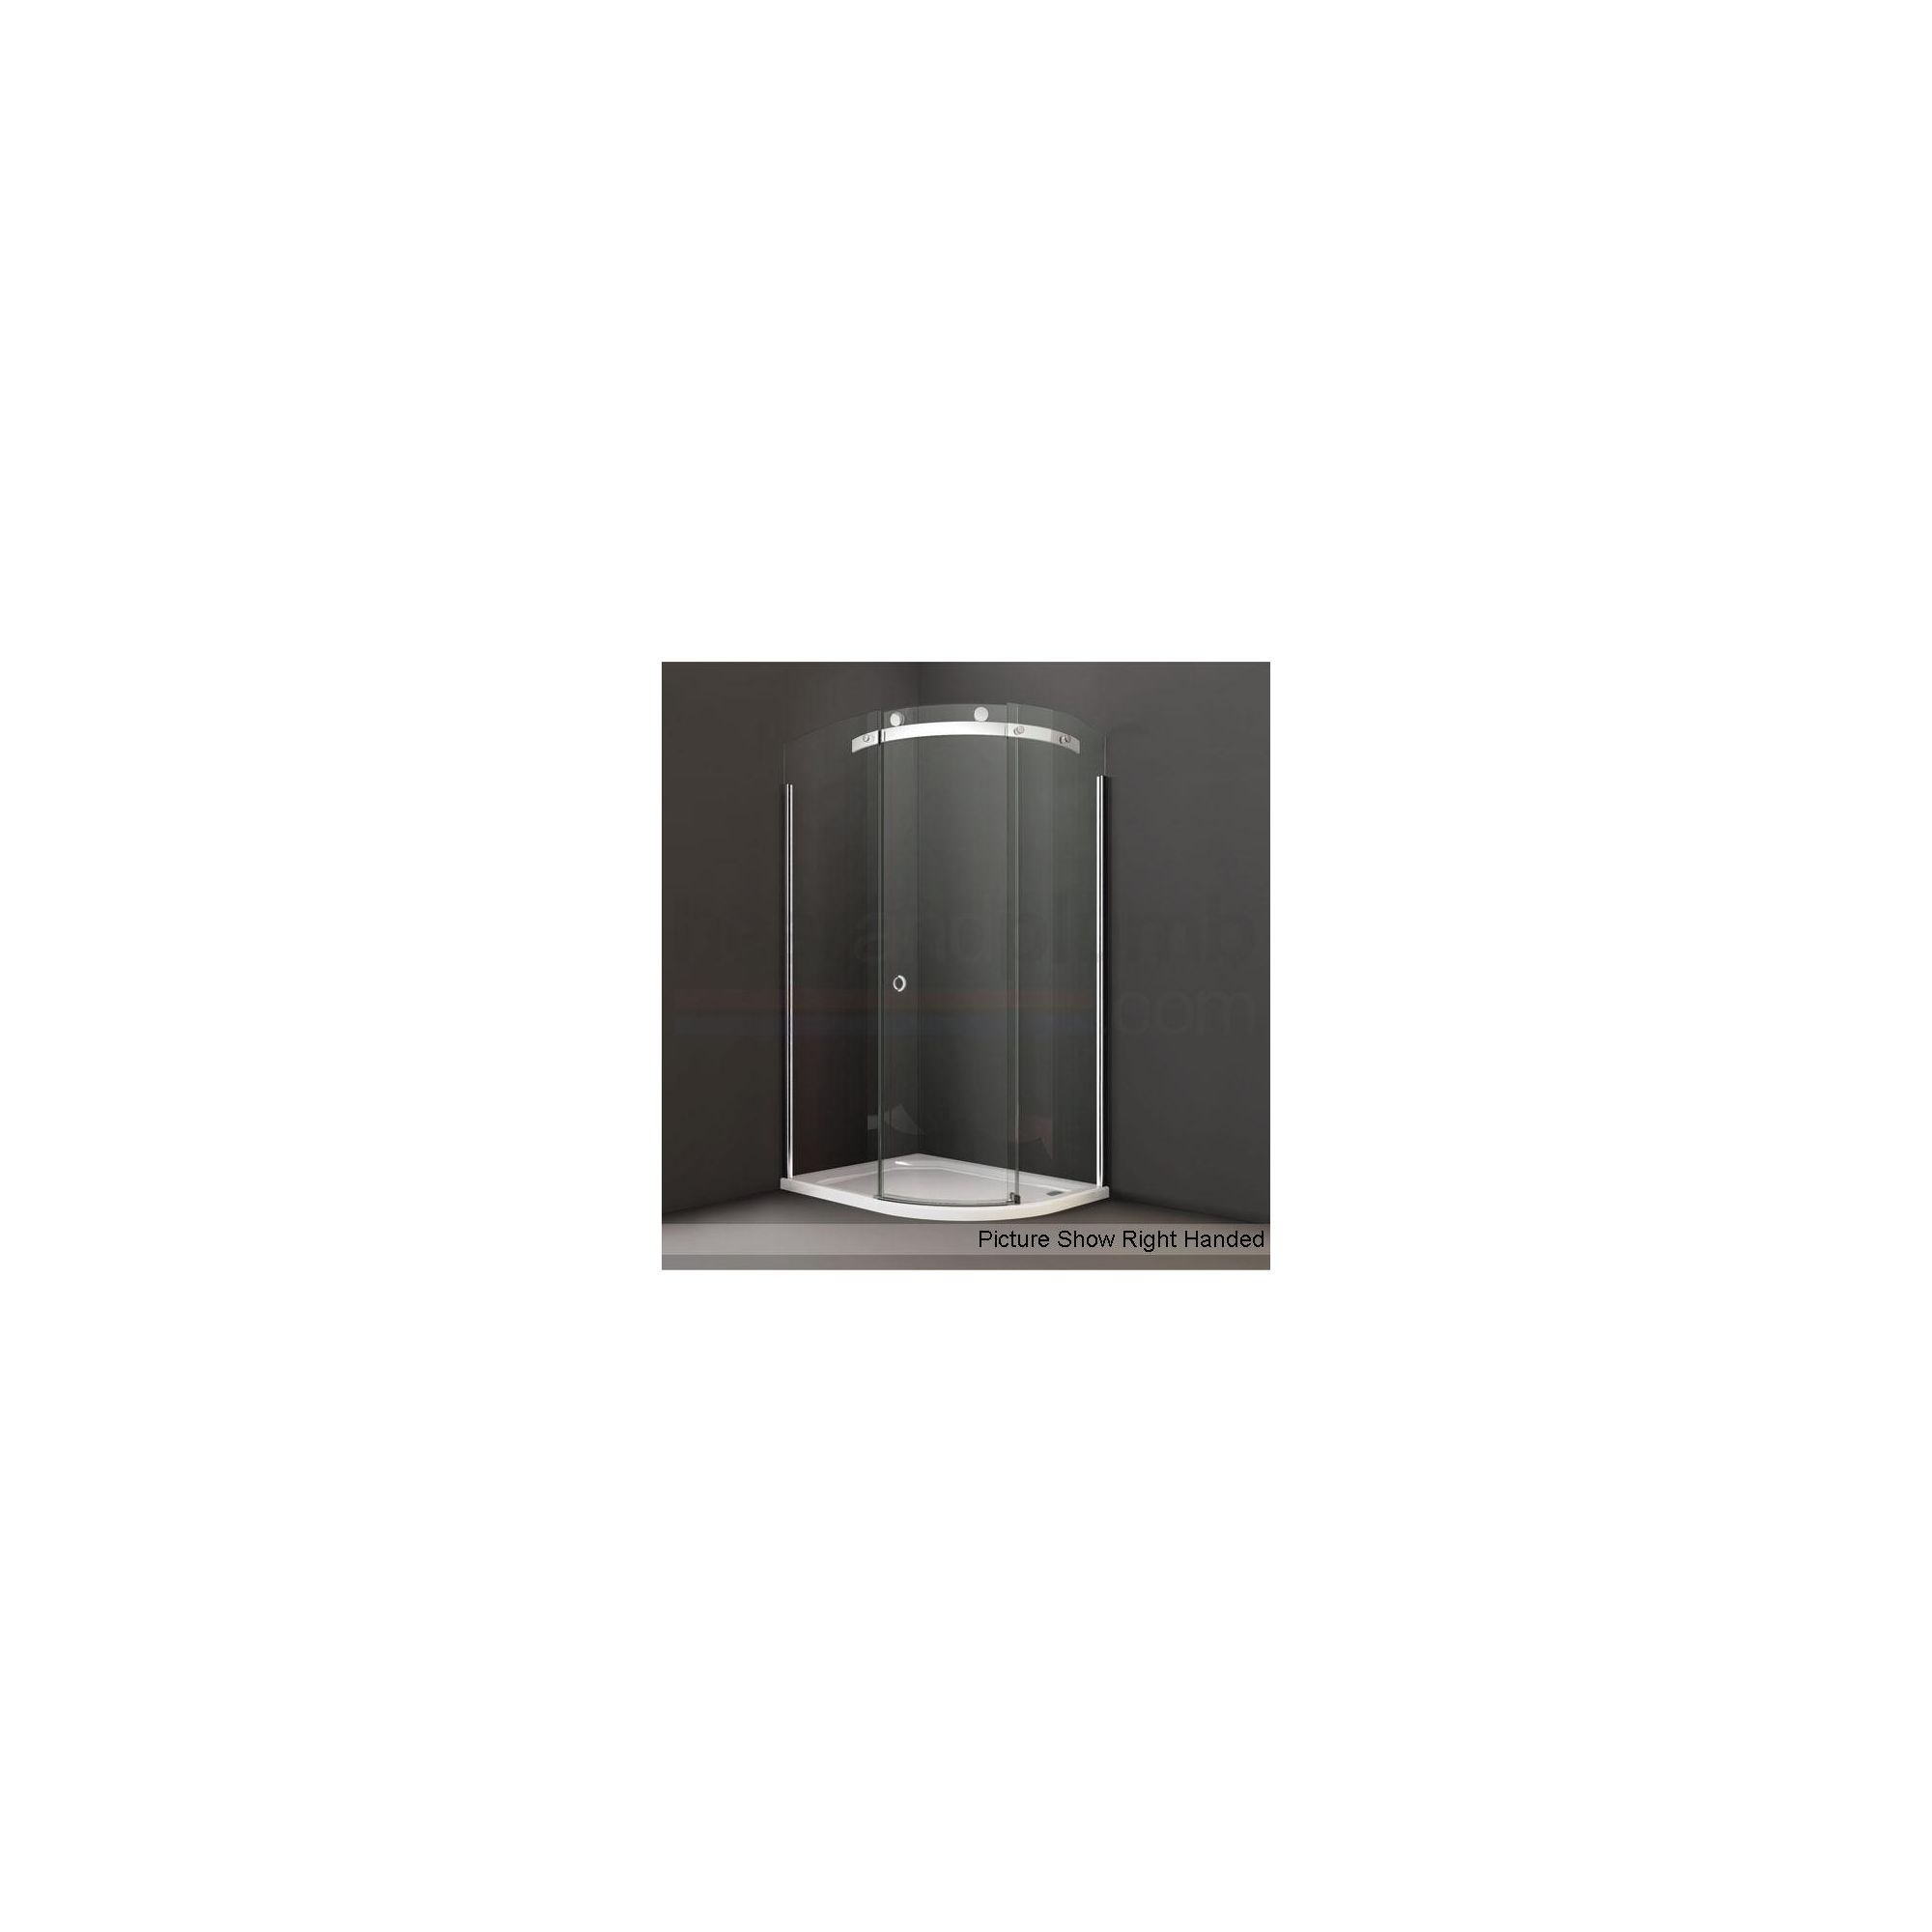 Merlyn Series 10 Offset Quadrant Sliding Door Shower Enclosure, 1000mm x 800mm, Low Profile Tray, 10mm Glass at Tesco Direct